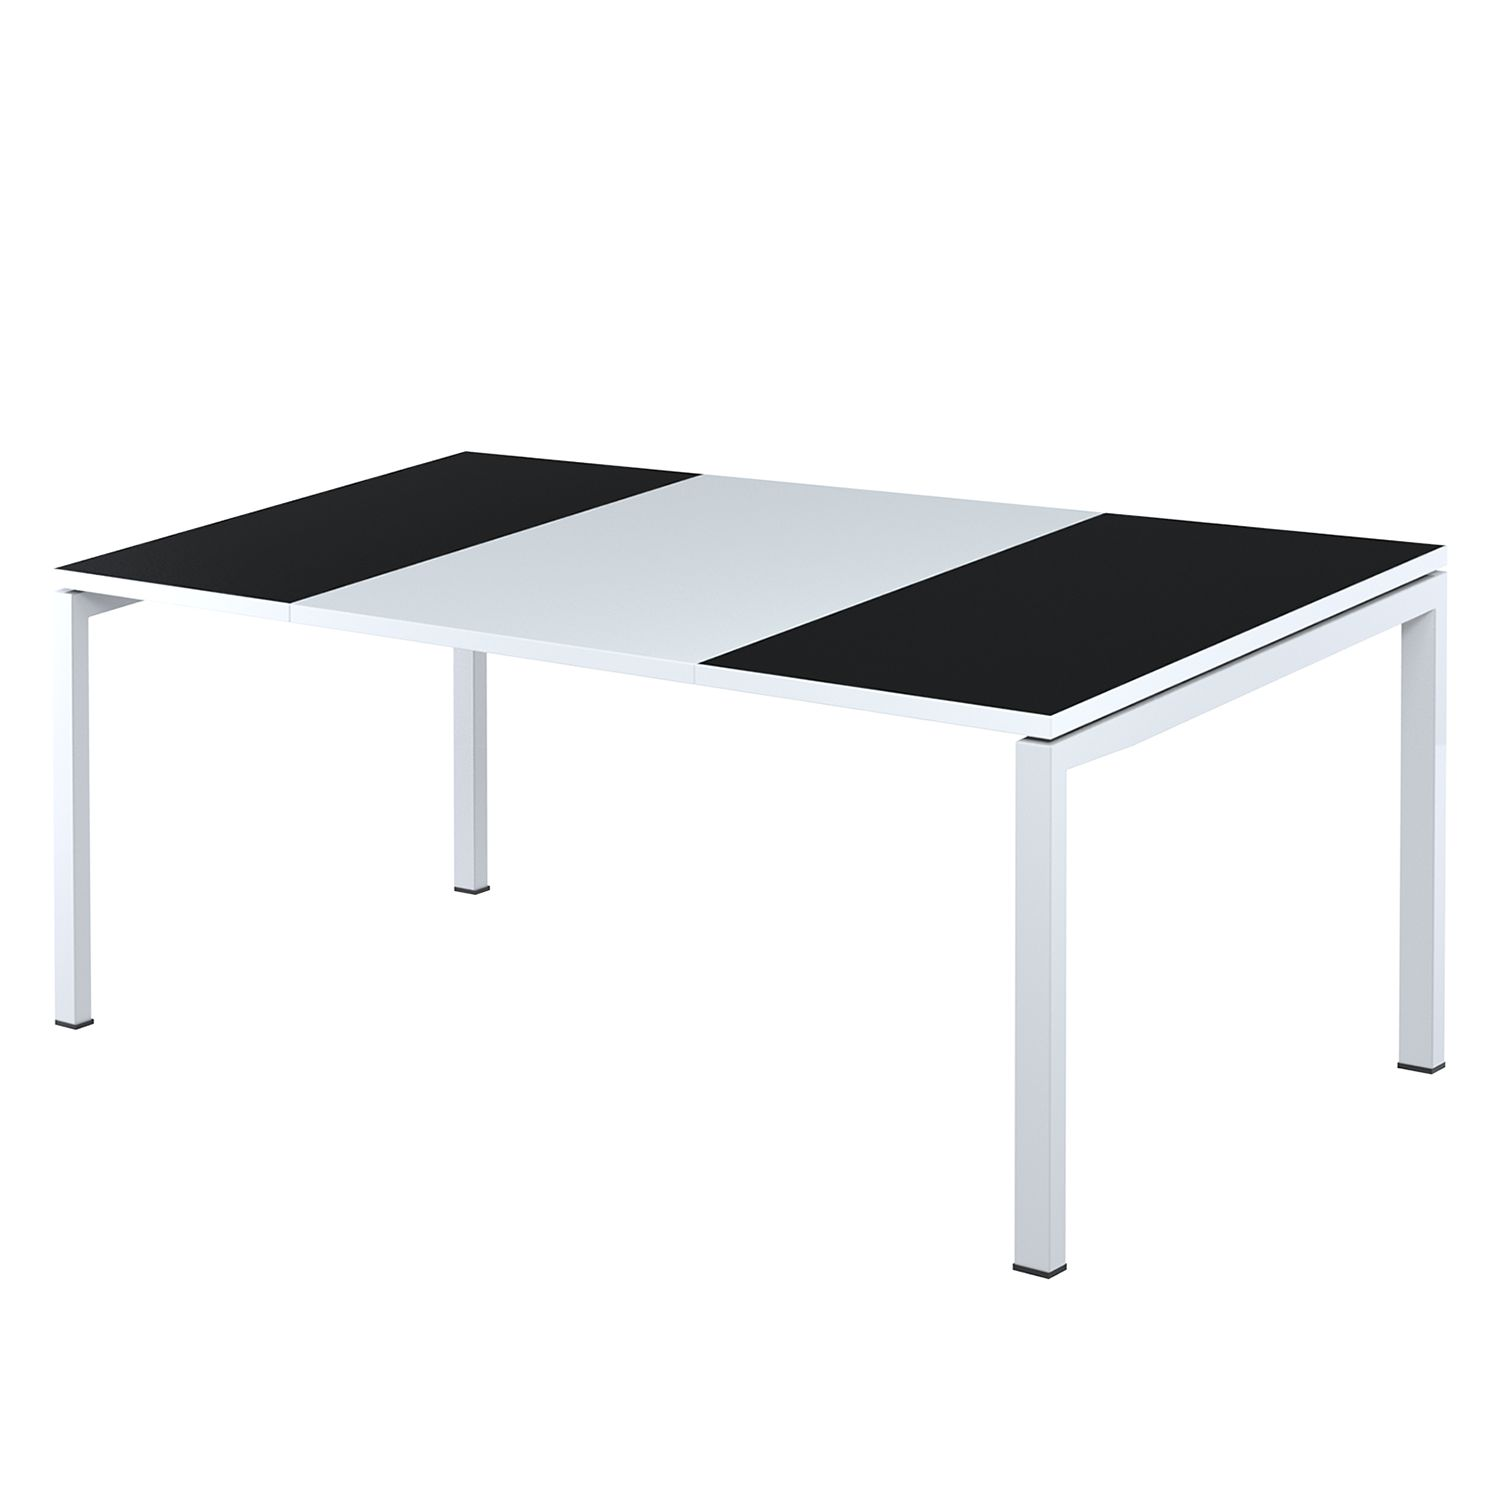 Scrivania easyDesk - Bianco / Nero - 180 x 80 cm, easy Office und Paperflow